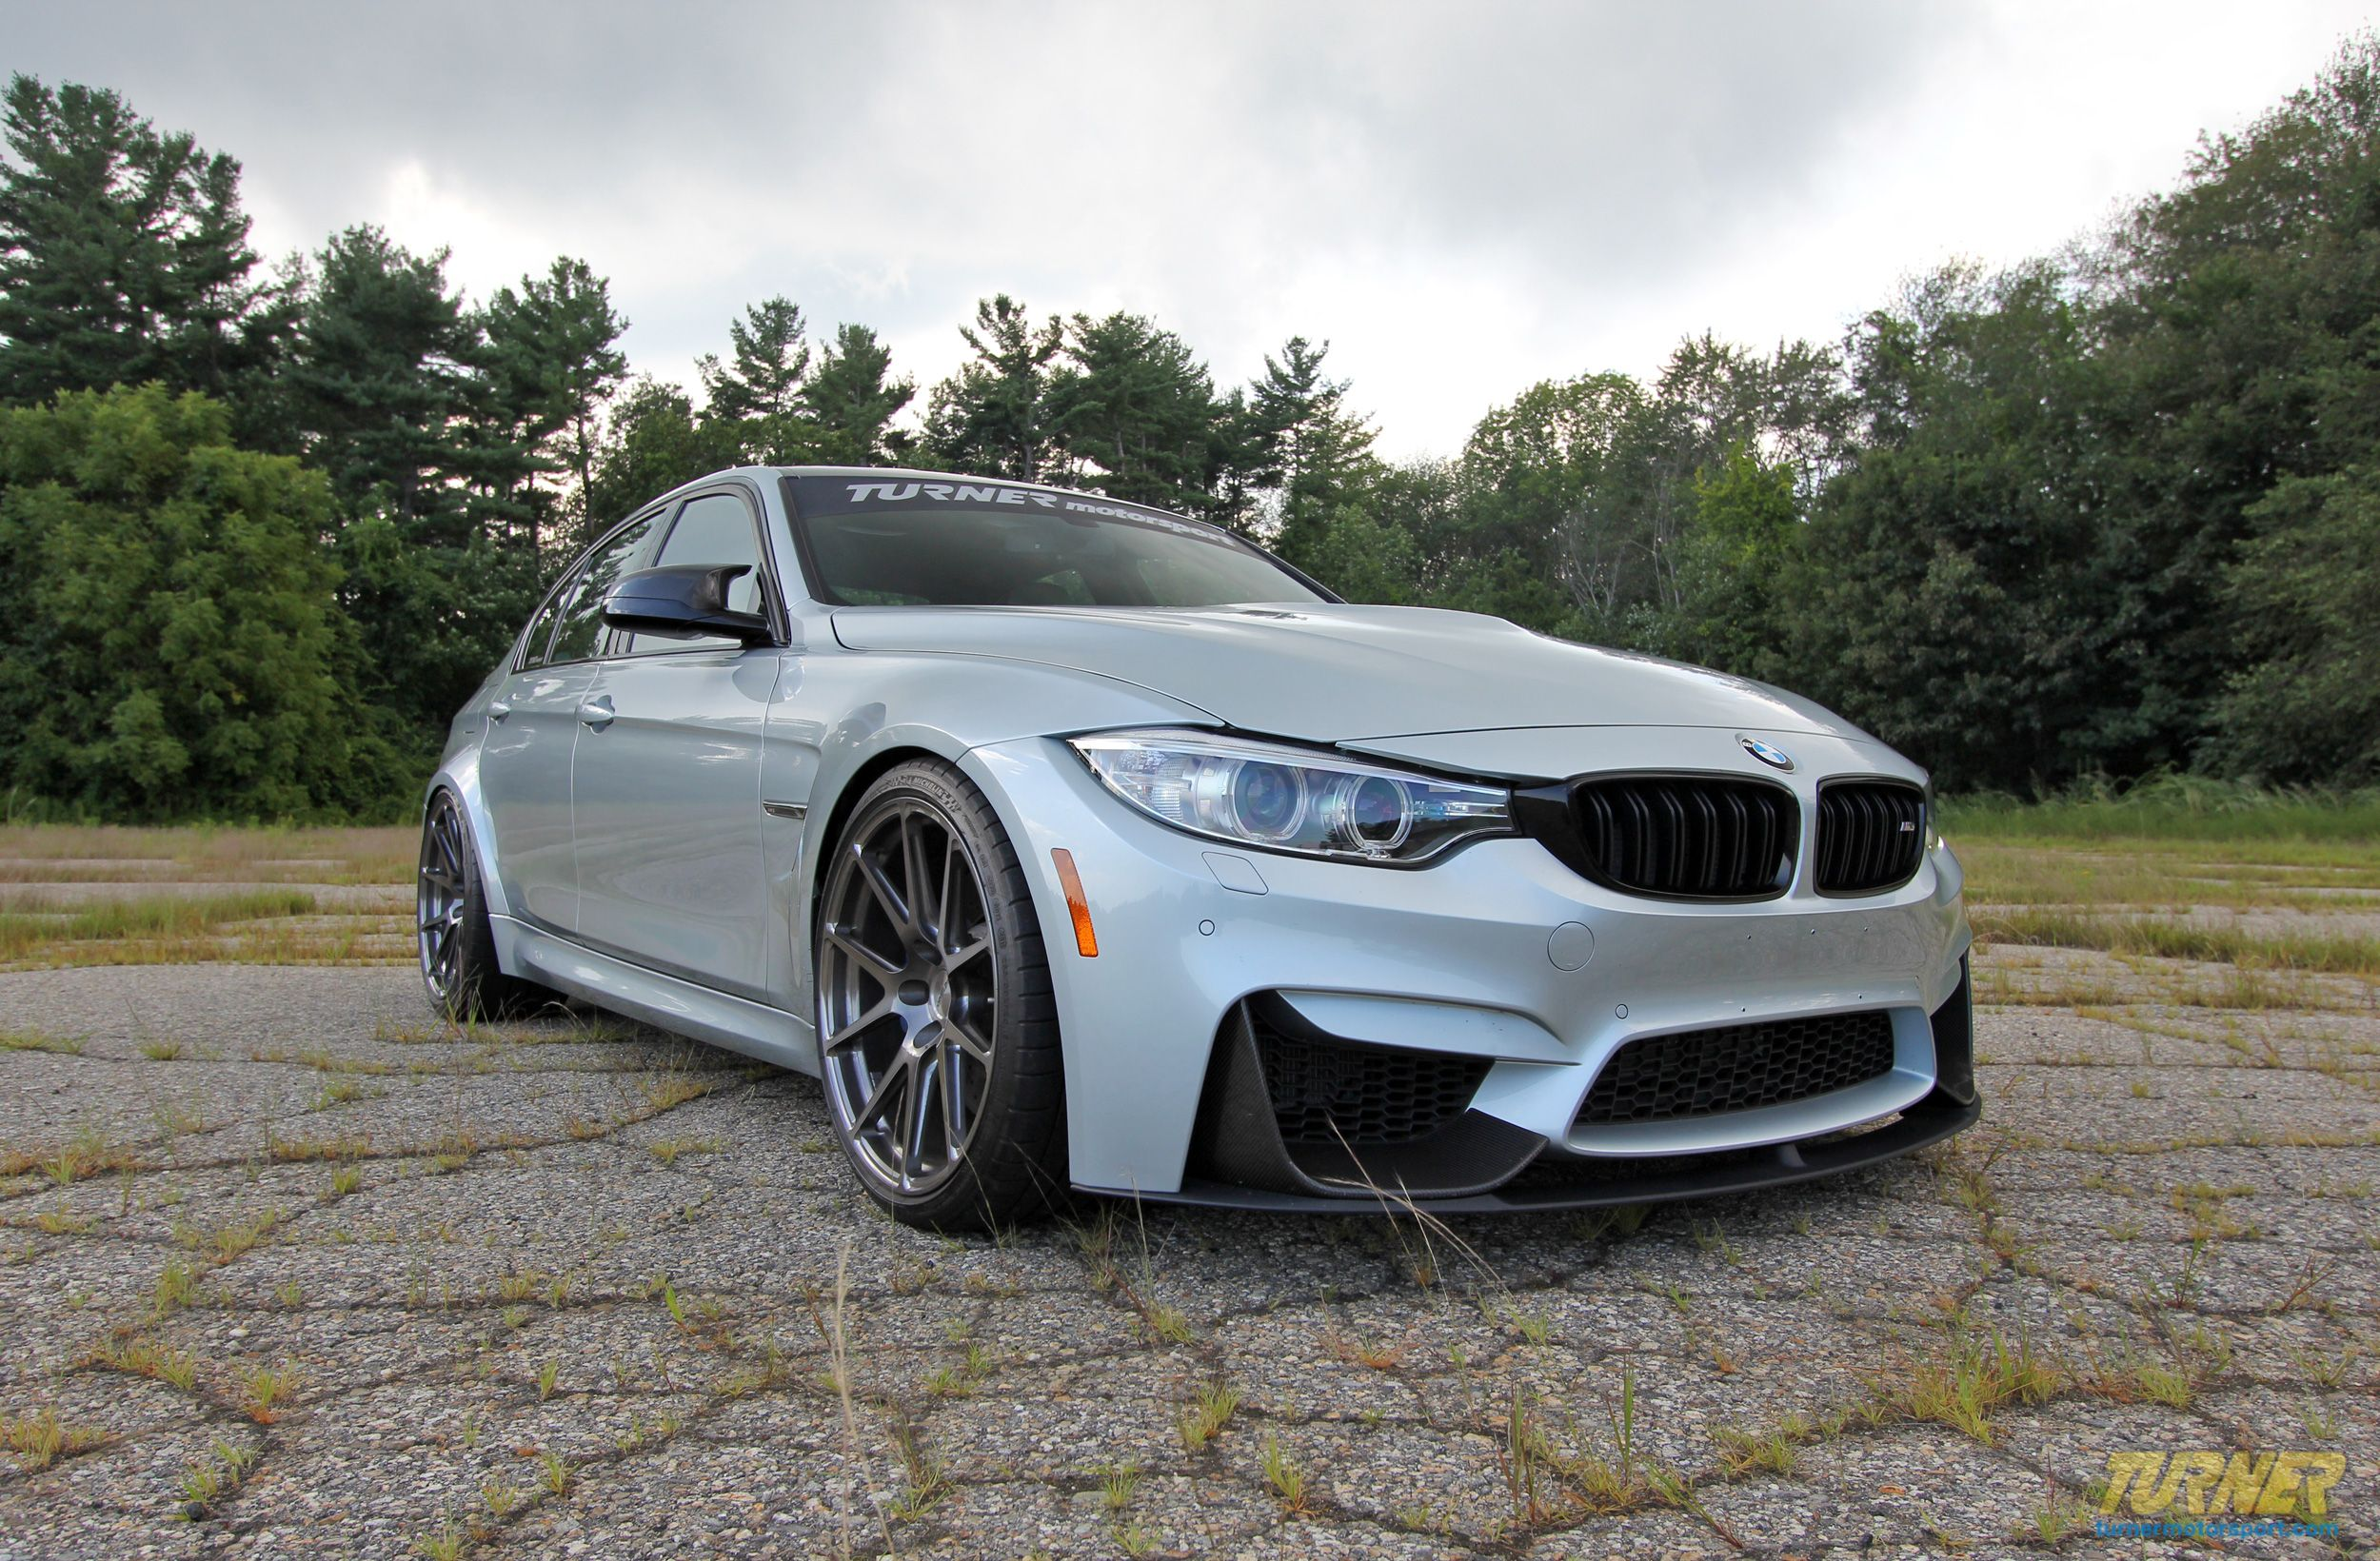 The team at Turner Motorsport equipped this new Silverstone BMW F80 ...